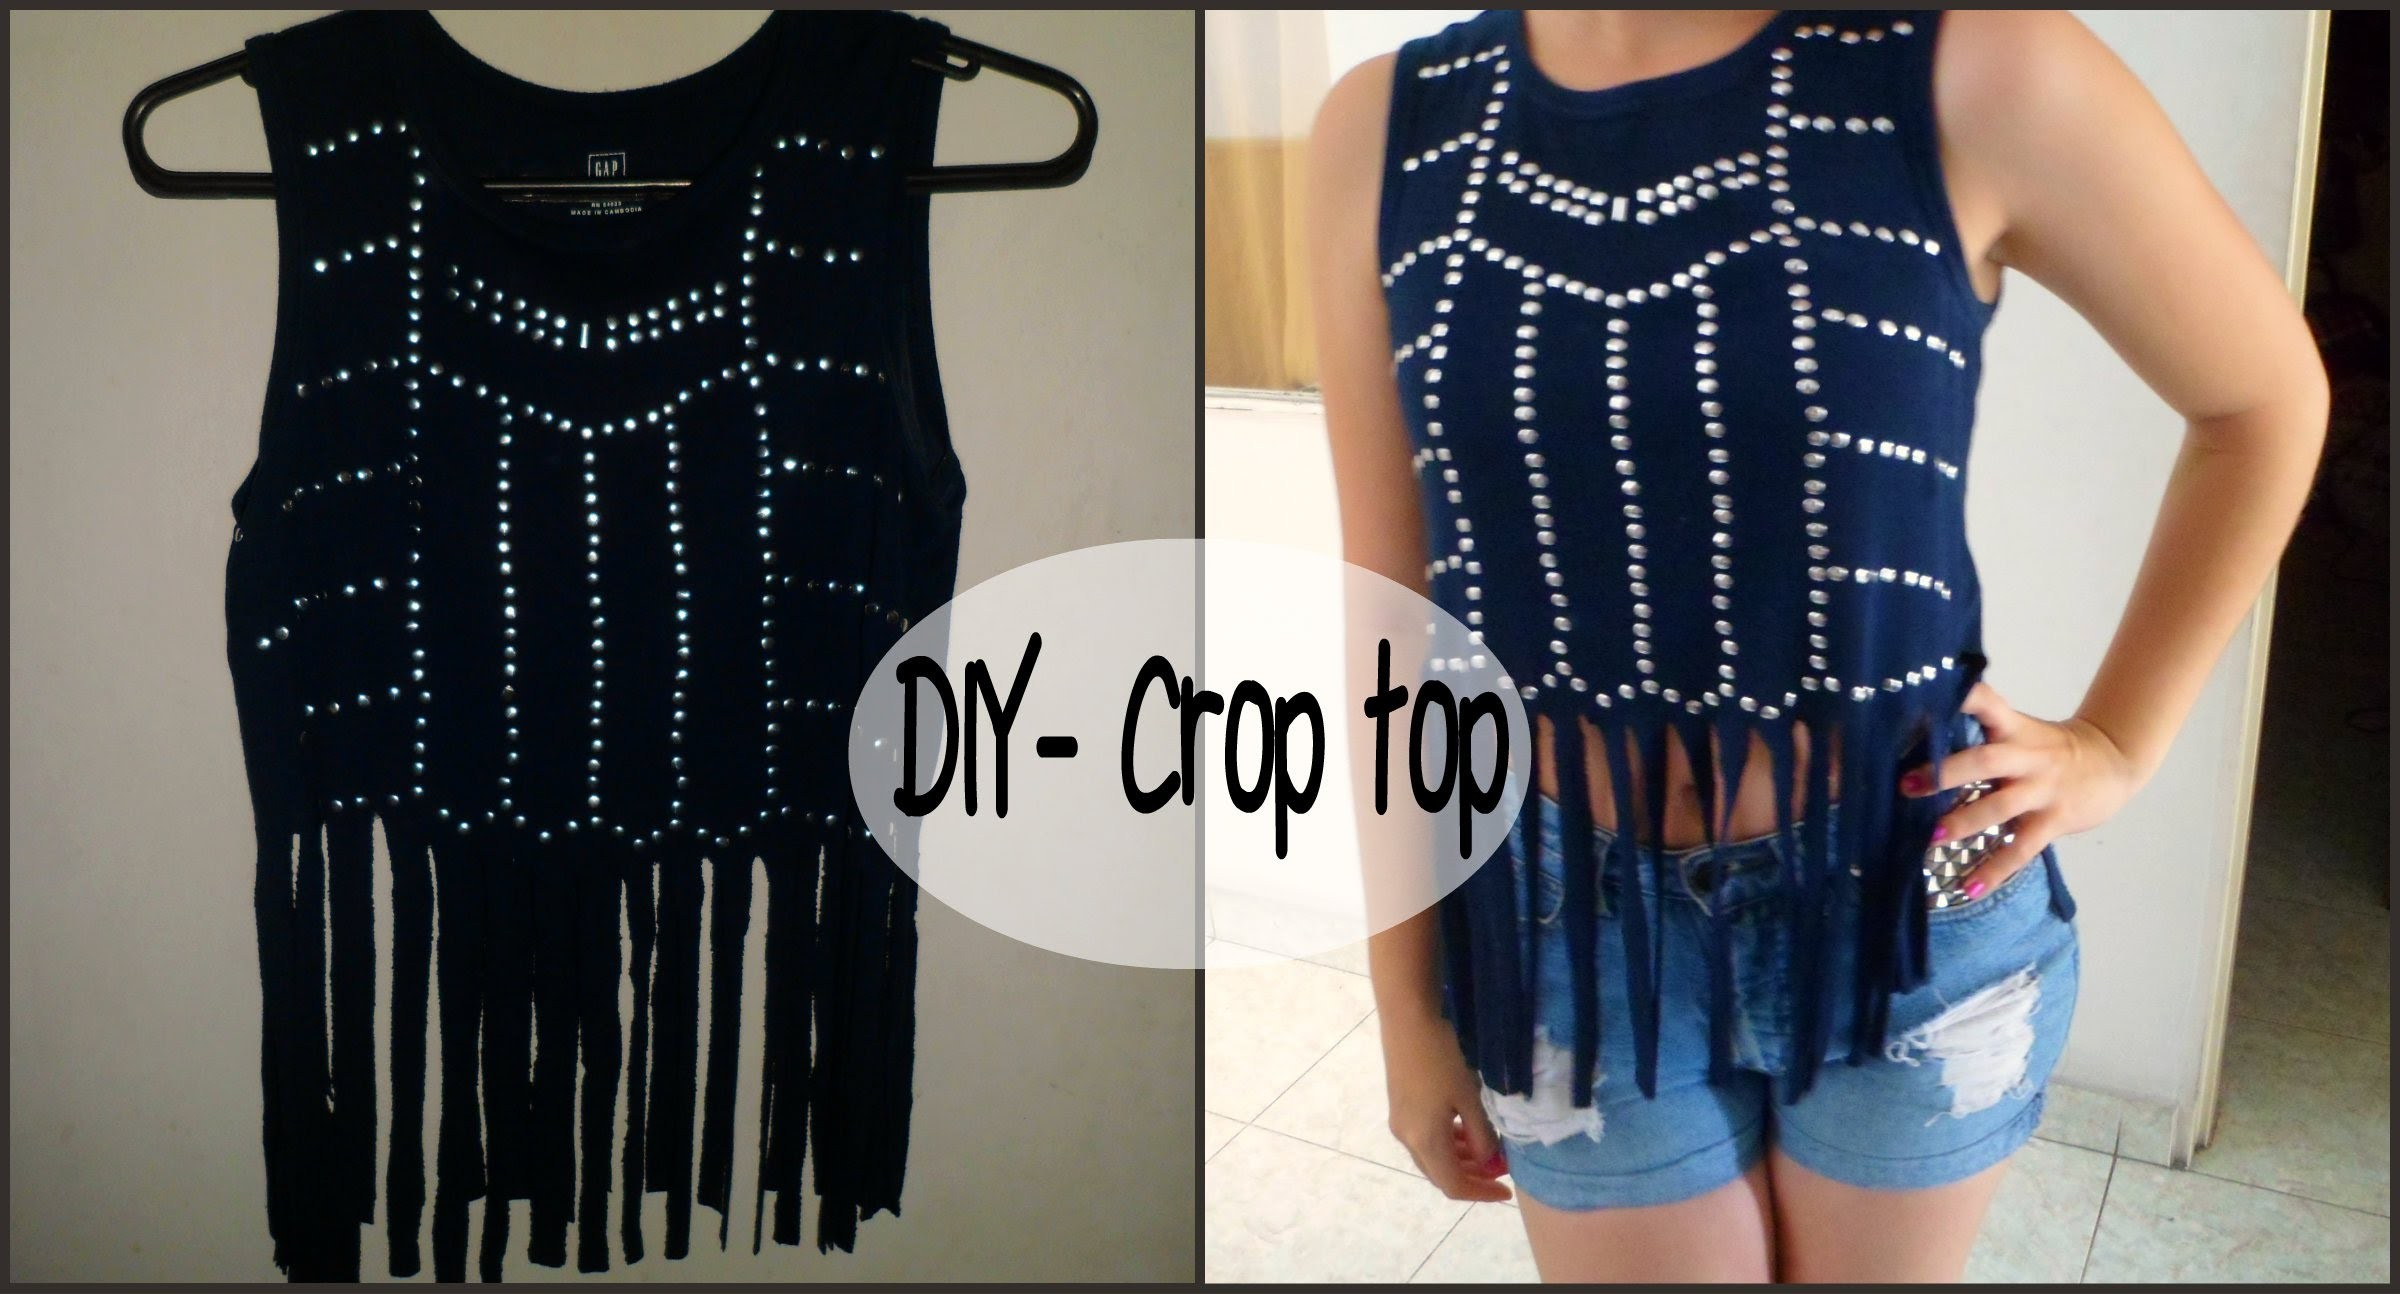 DIY- Transforma tus camisetas en un crop top de verano estampado